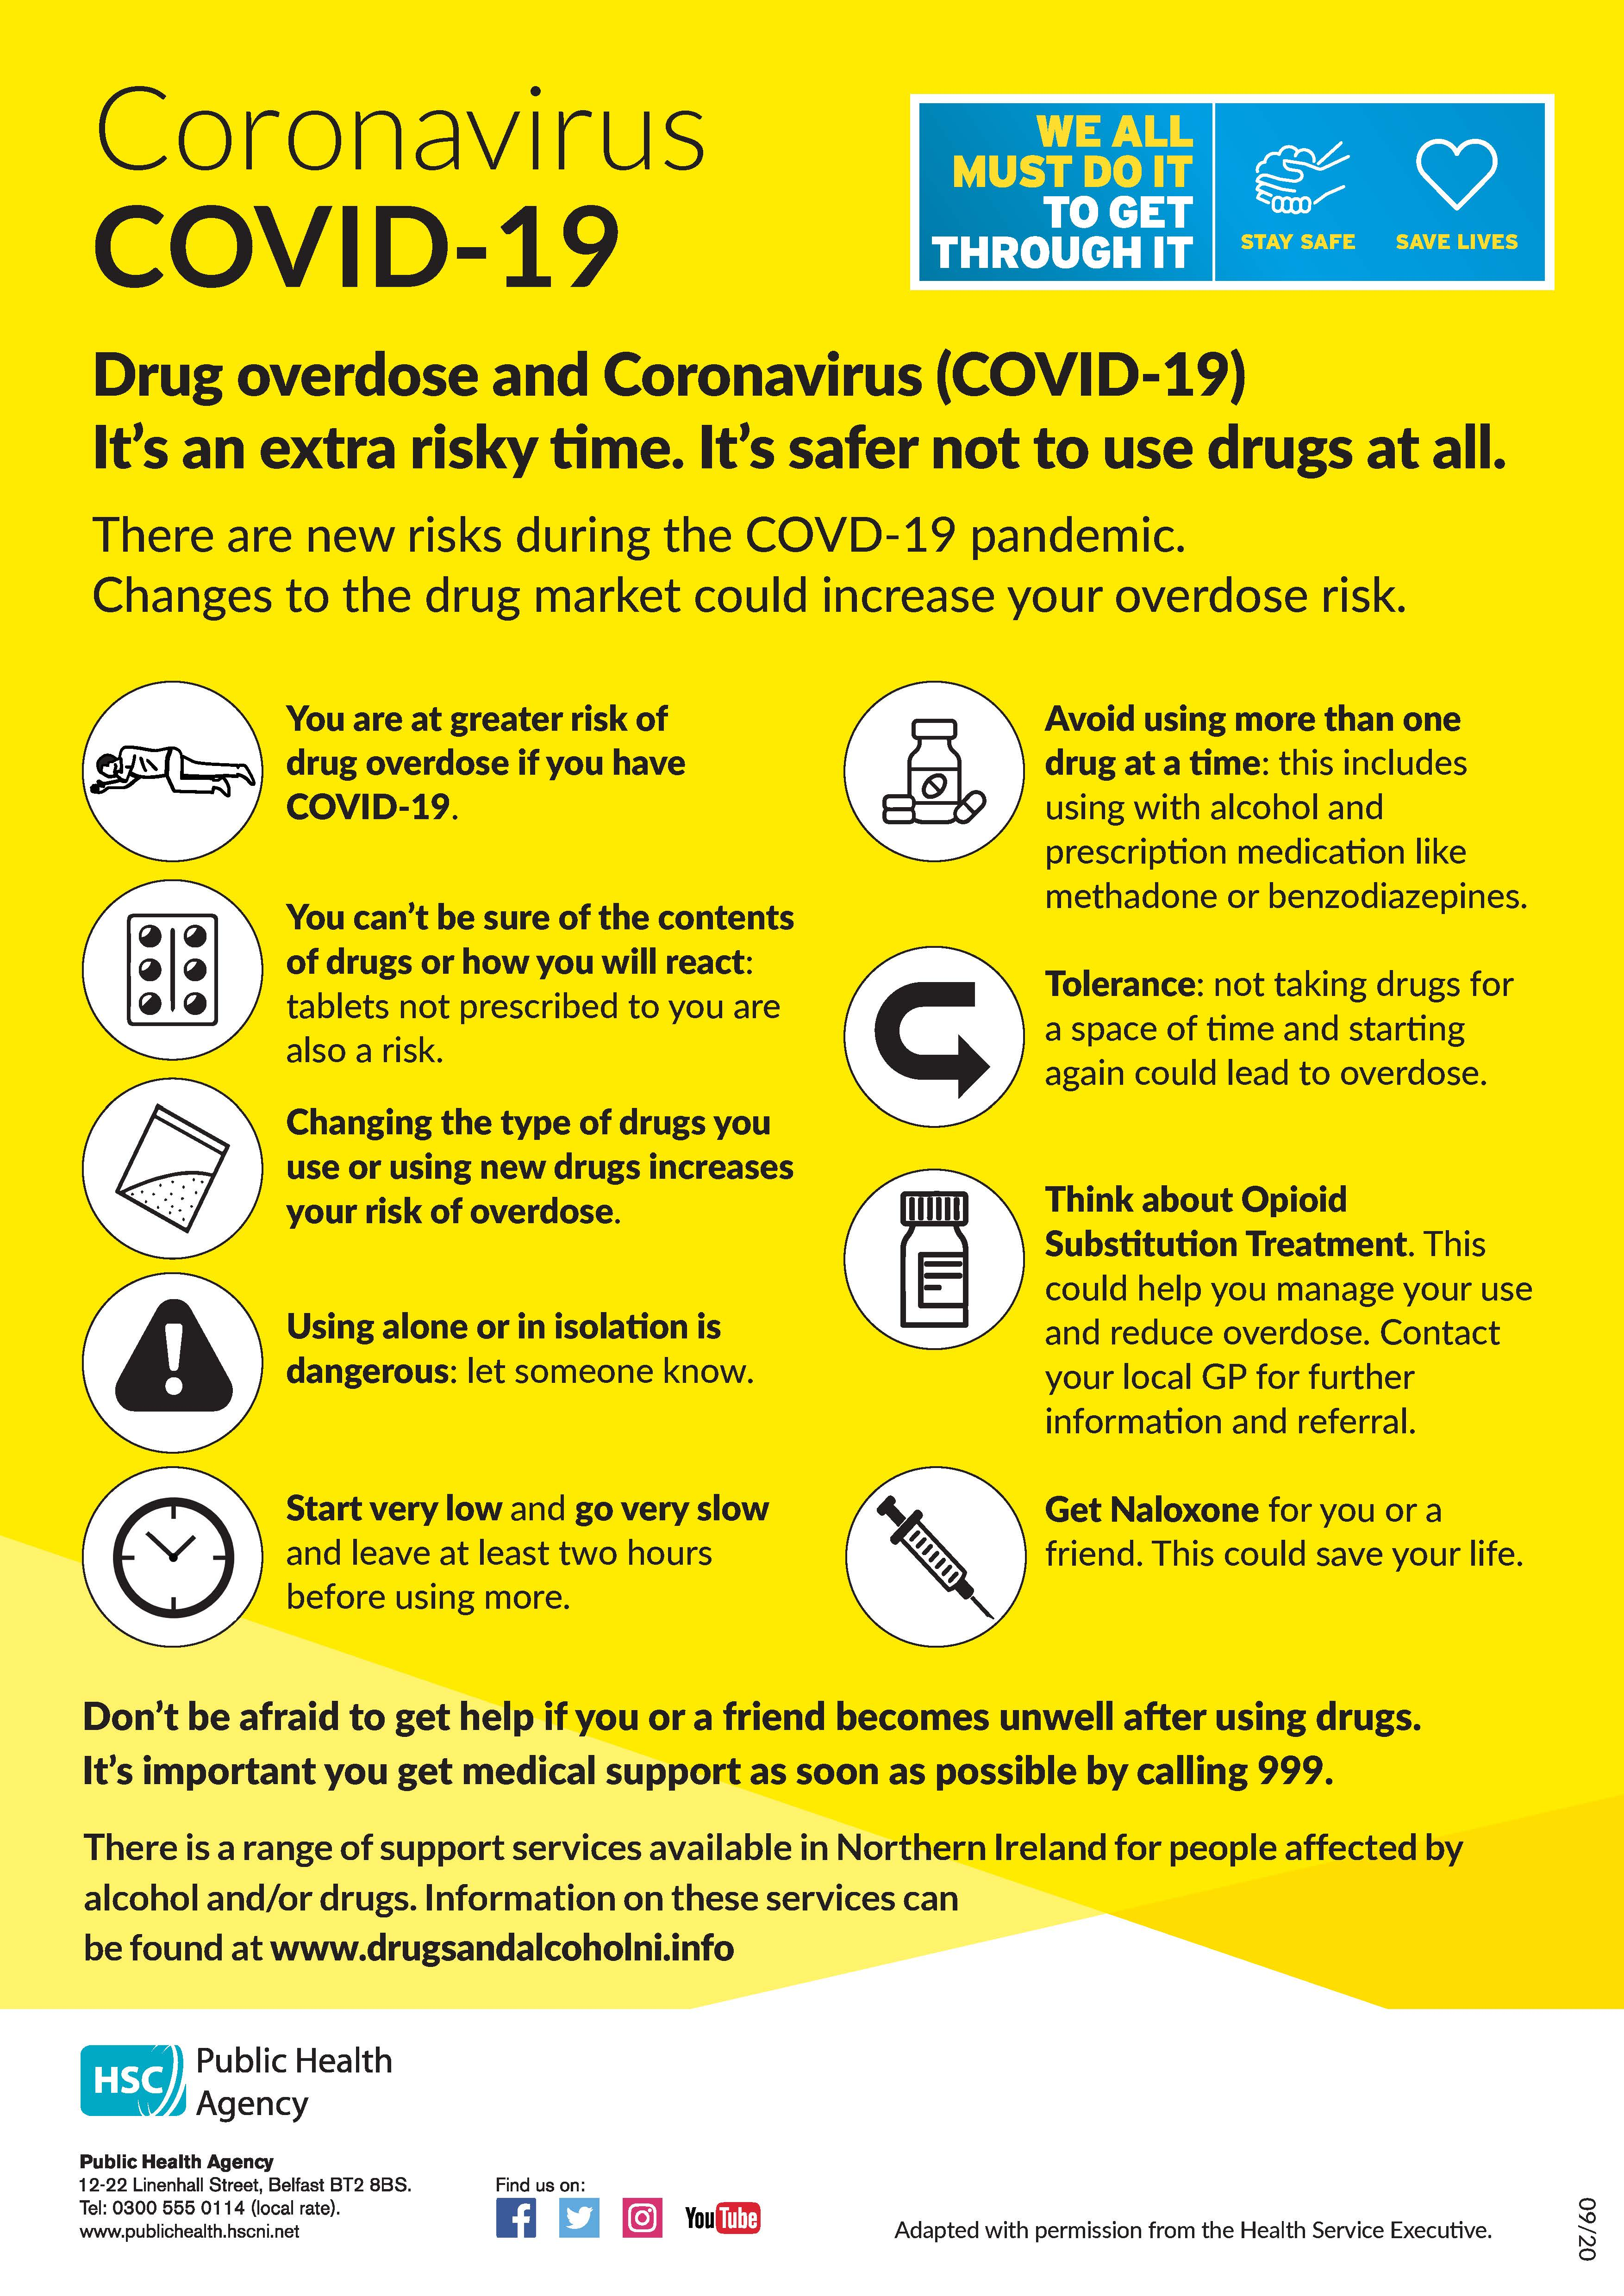 Image of drugs harm reduction poster